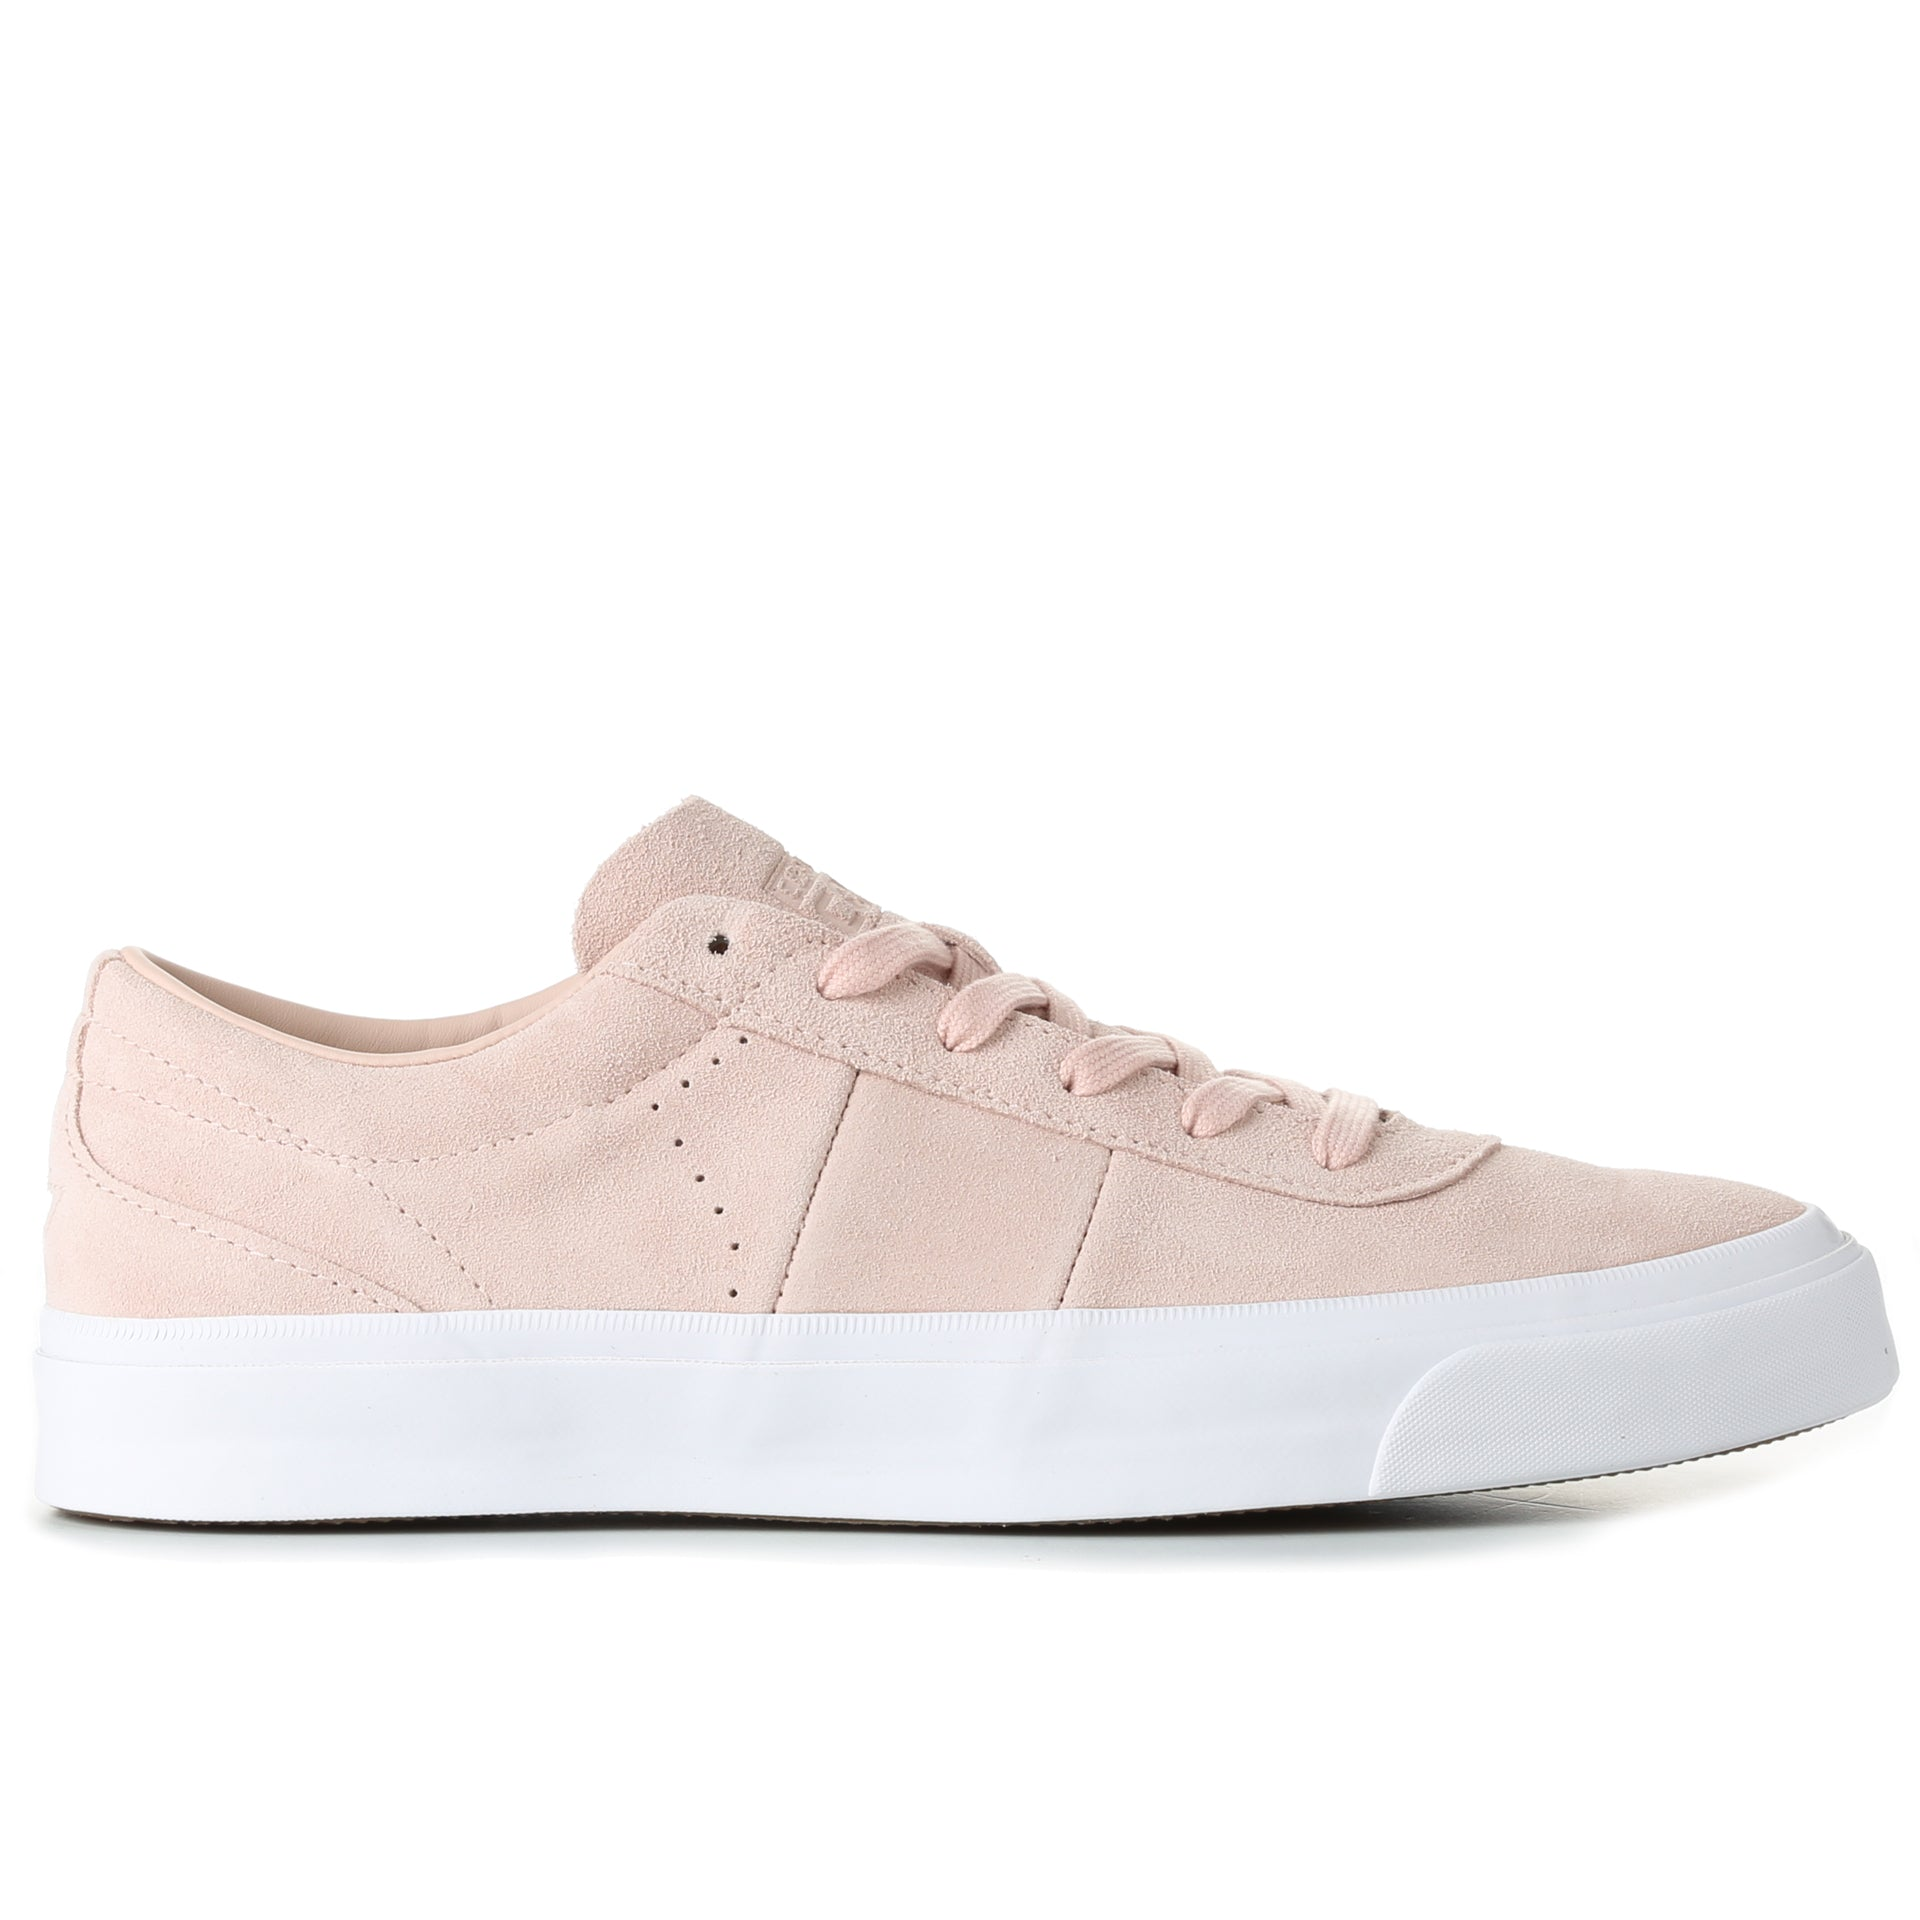 3b911b037393 Converse One Star CC Oiled Suede Low Top - Dusk Pink - New Star